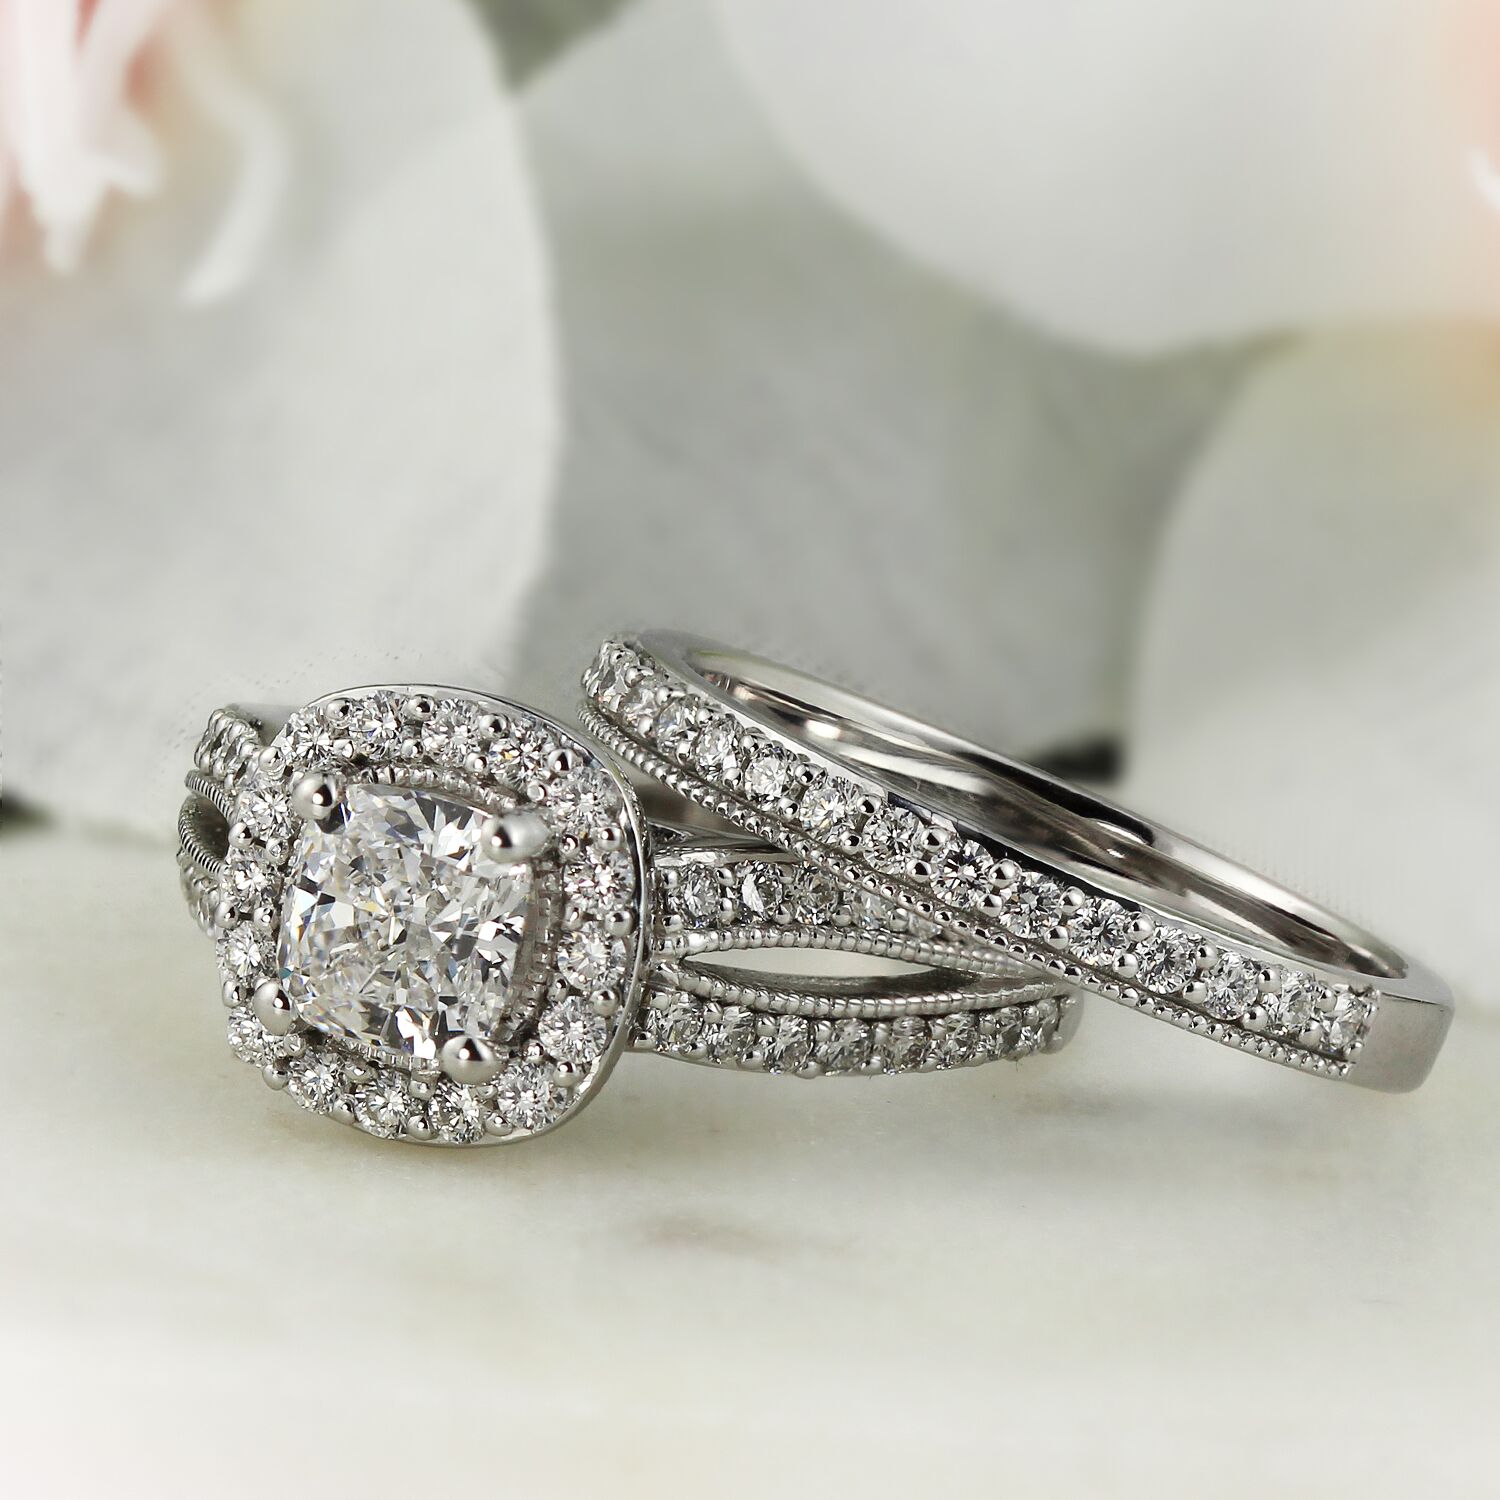 How to Choose a Princess Cut or Cushion Cut Engagement Ring